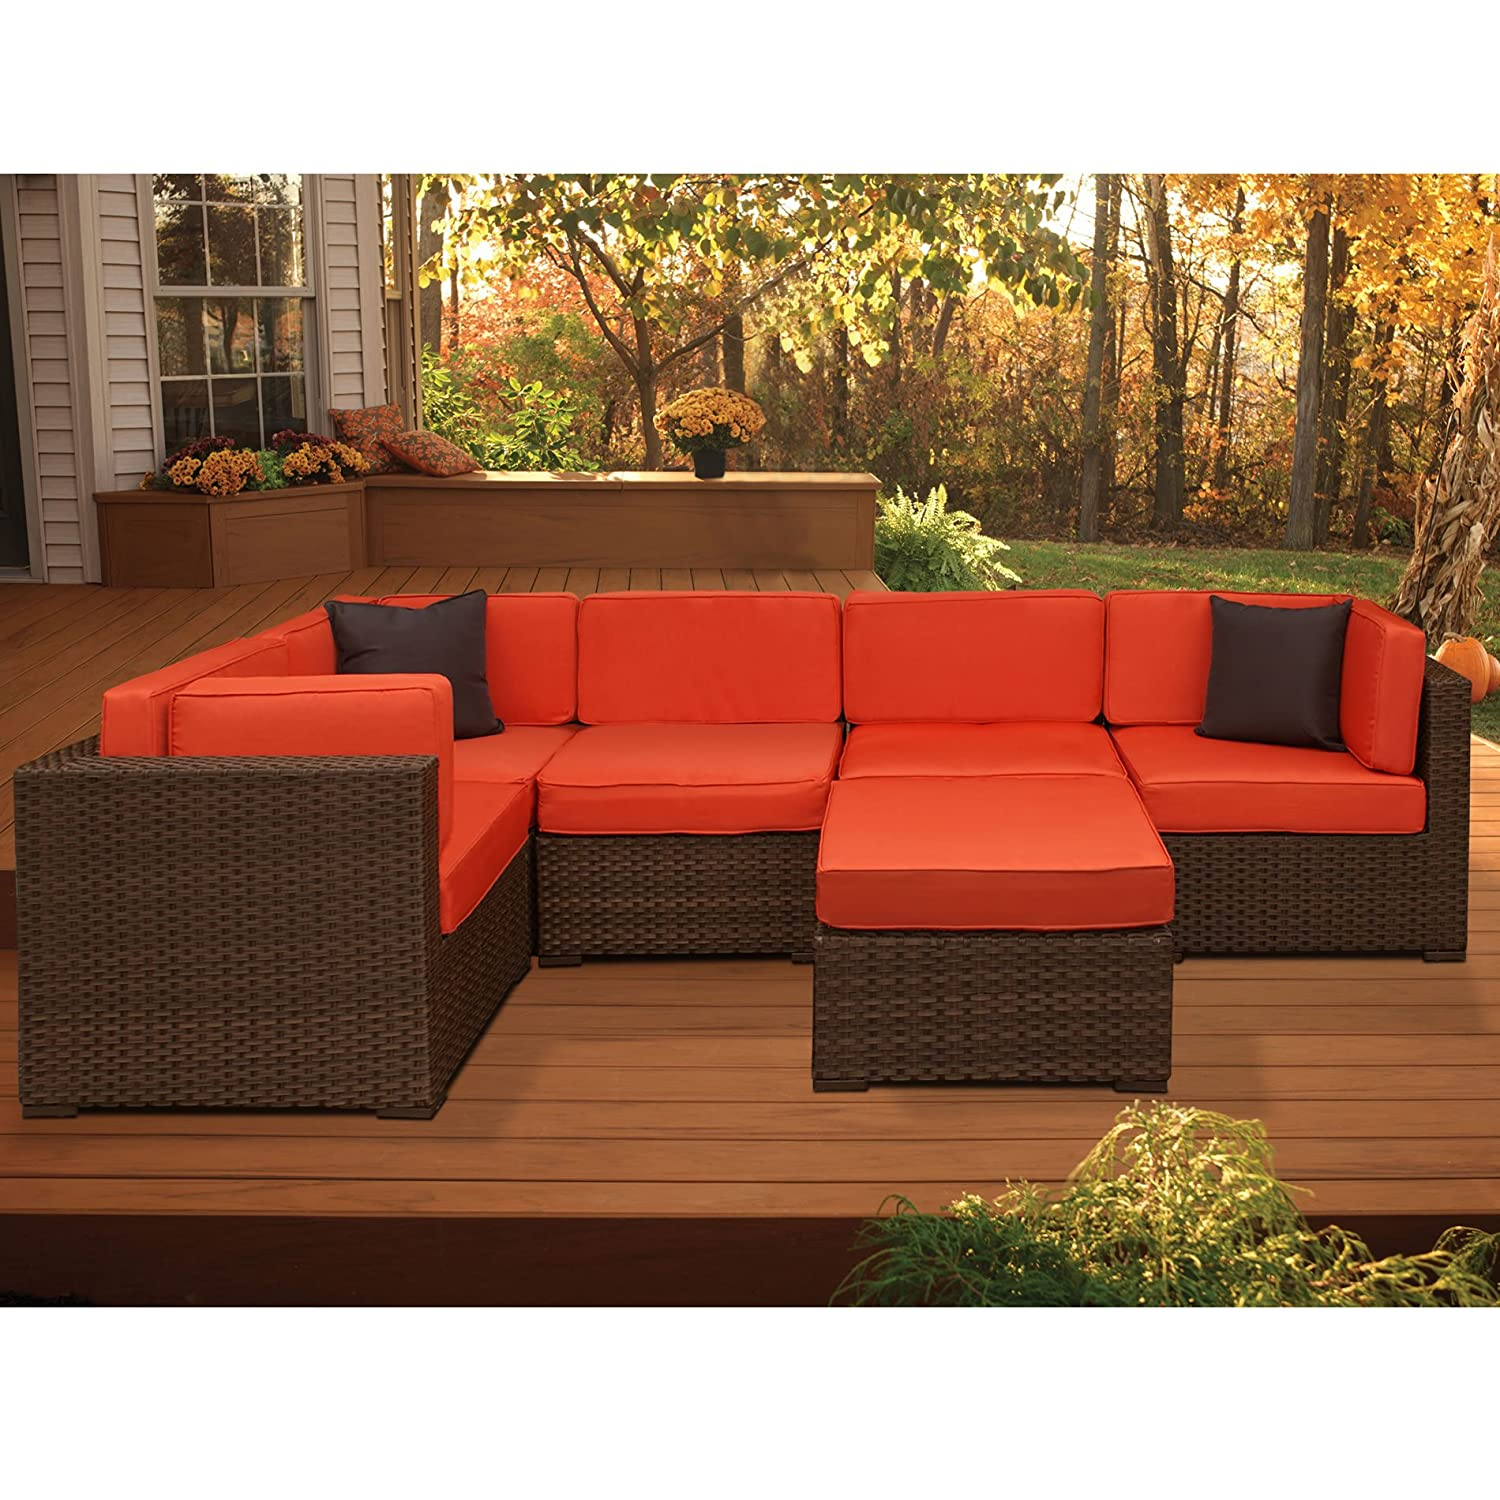 Amazon Atlantic Bellagio 6 Piece Outdoor Sectional Orange